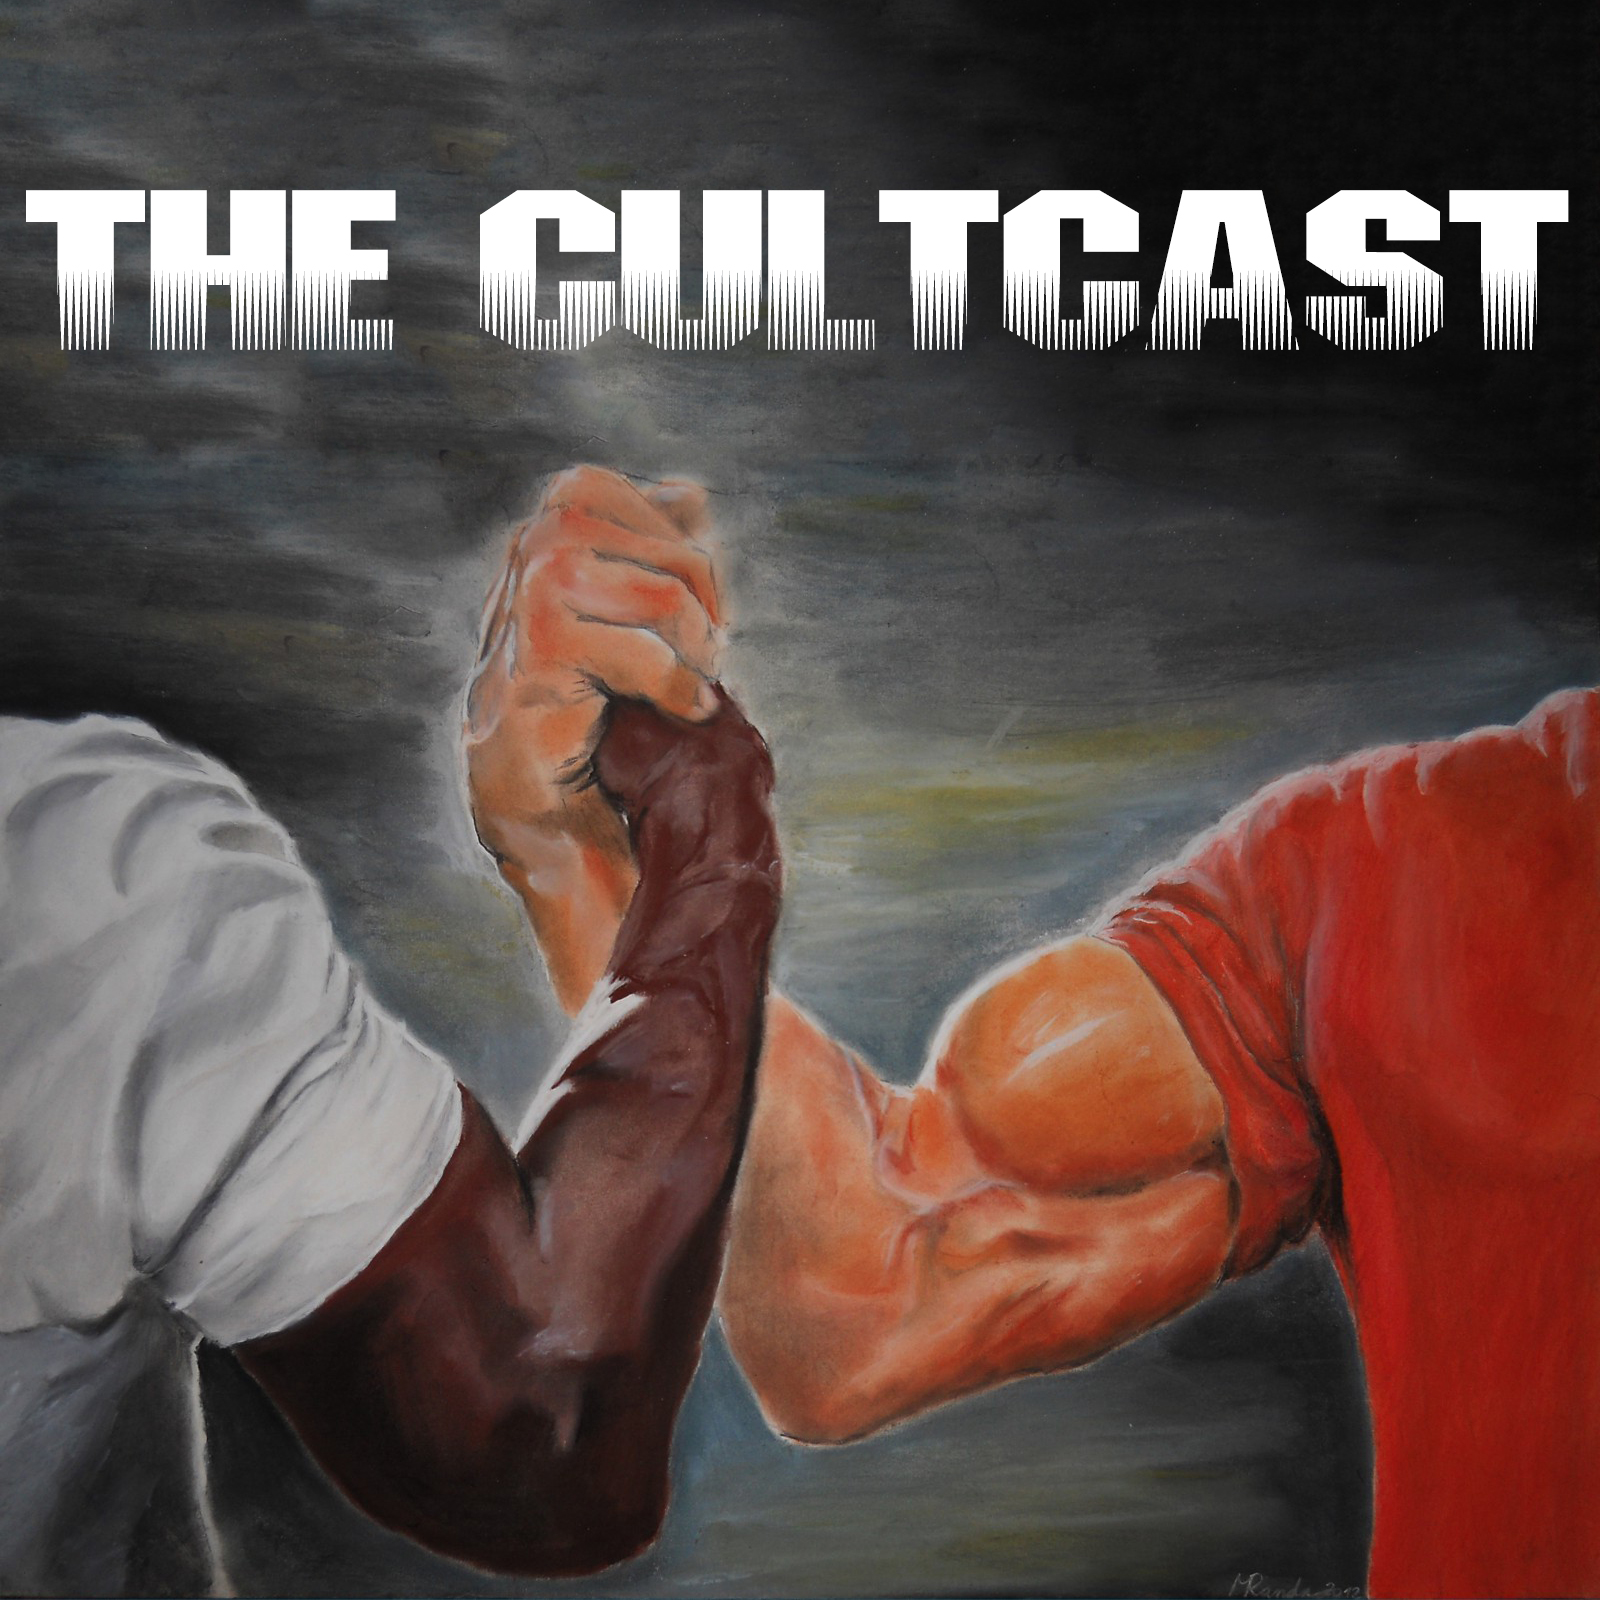 Sofa King Podcast Challenger Pastime The Cultcast